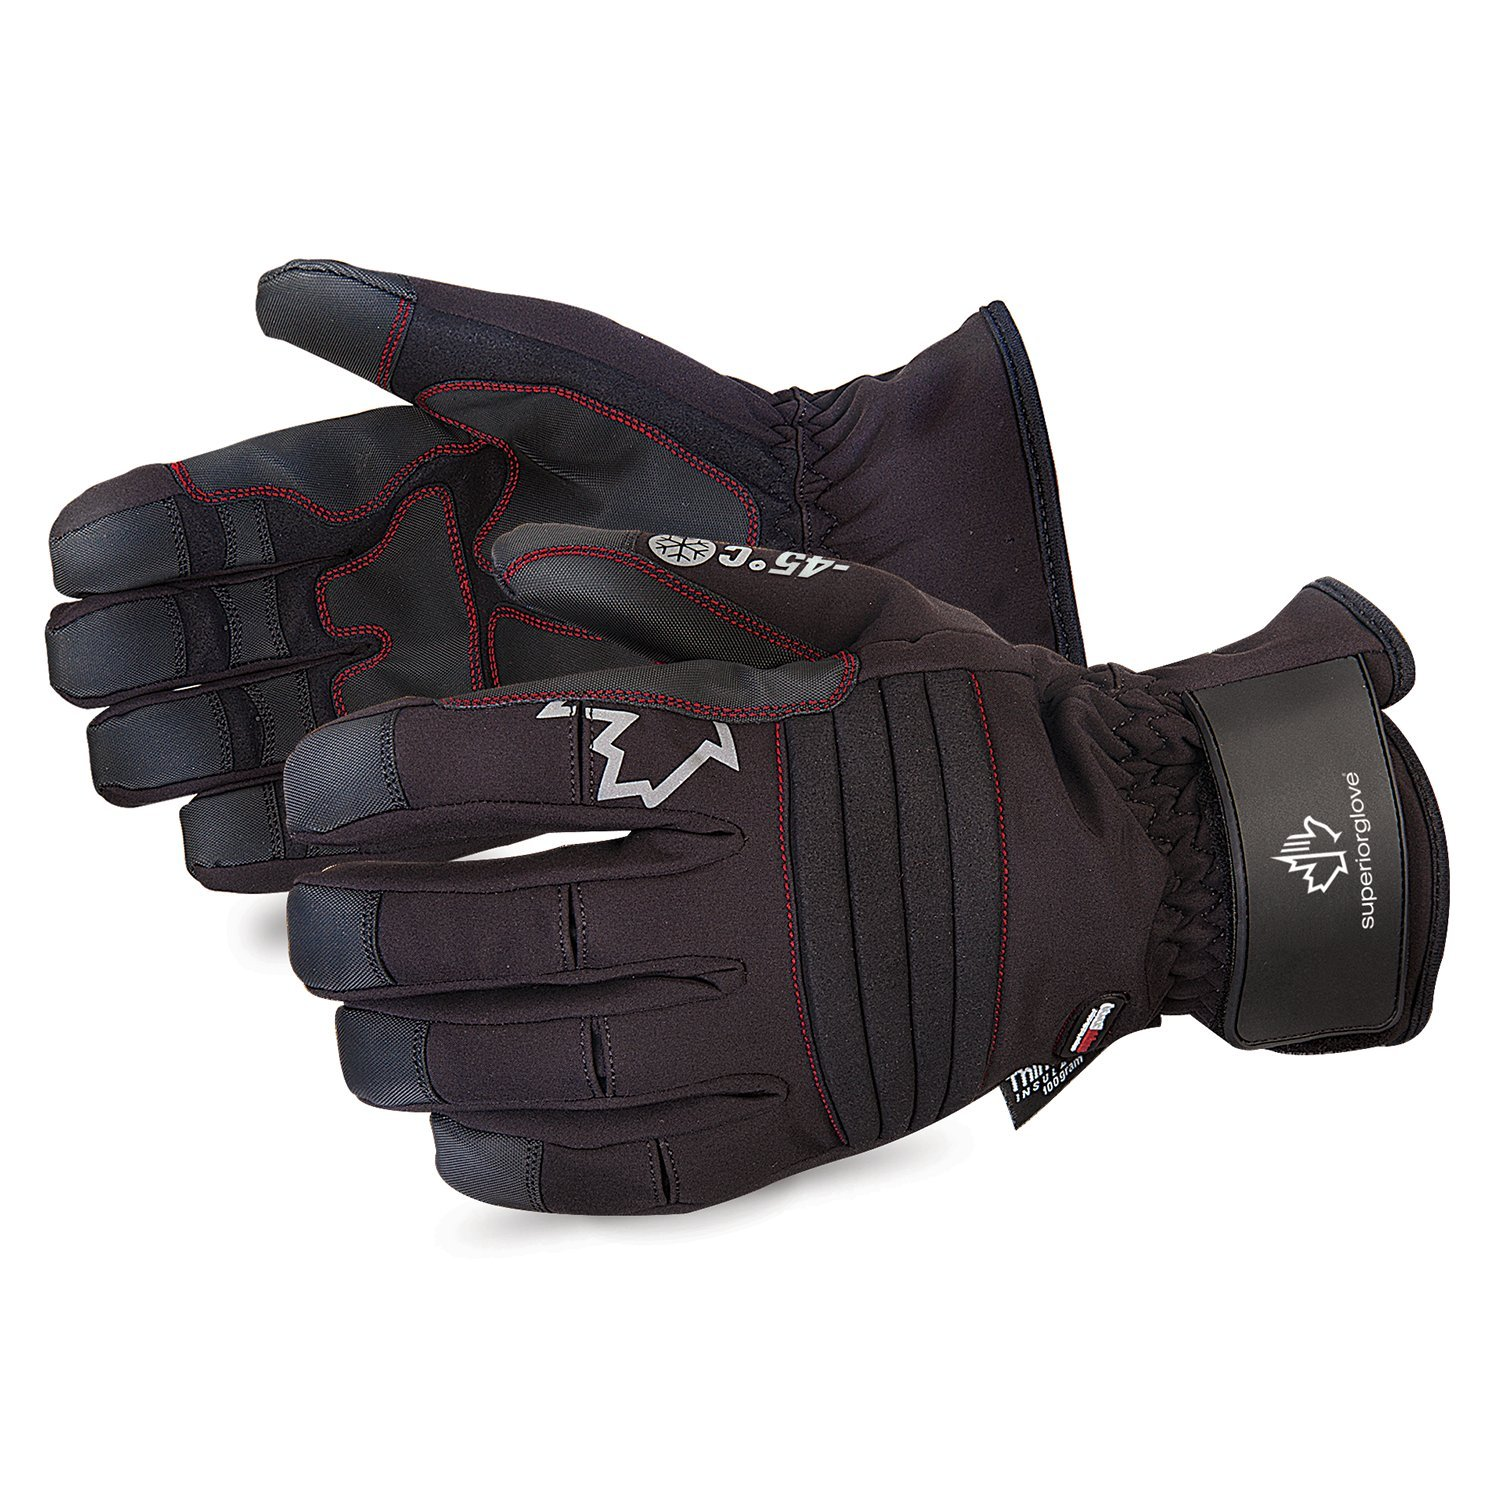 Superior Winter Snow Gloves – Waterproof, Windproof for Cold Sub-Zero Temperatures - Large Superior Glove Works SUSNOWD388VL